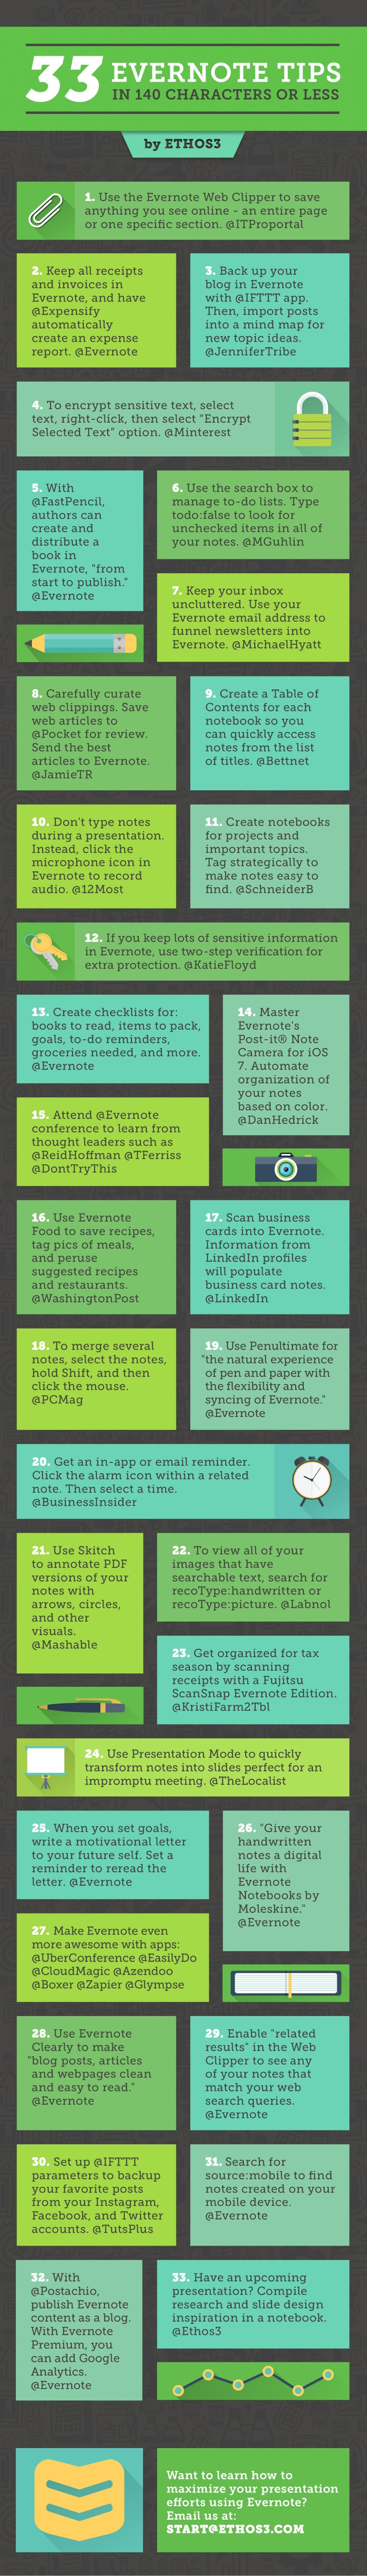 Bonus: 33 Evernote Tips for, in 140 characters or less - #infographic